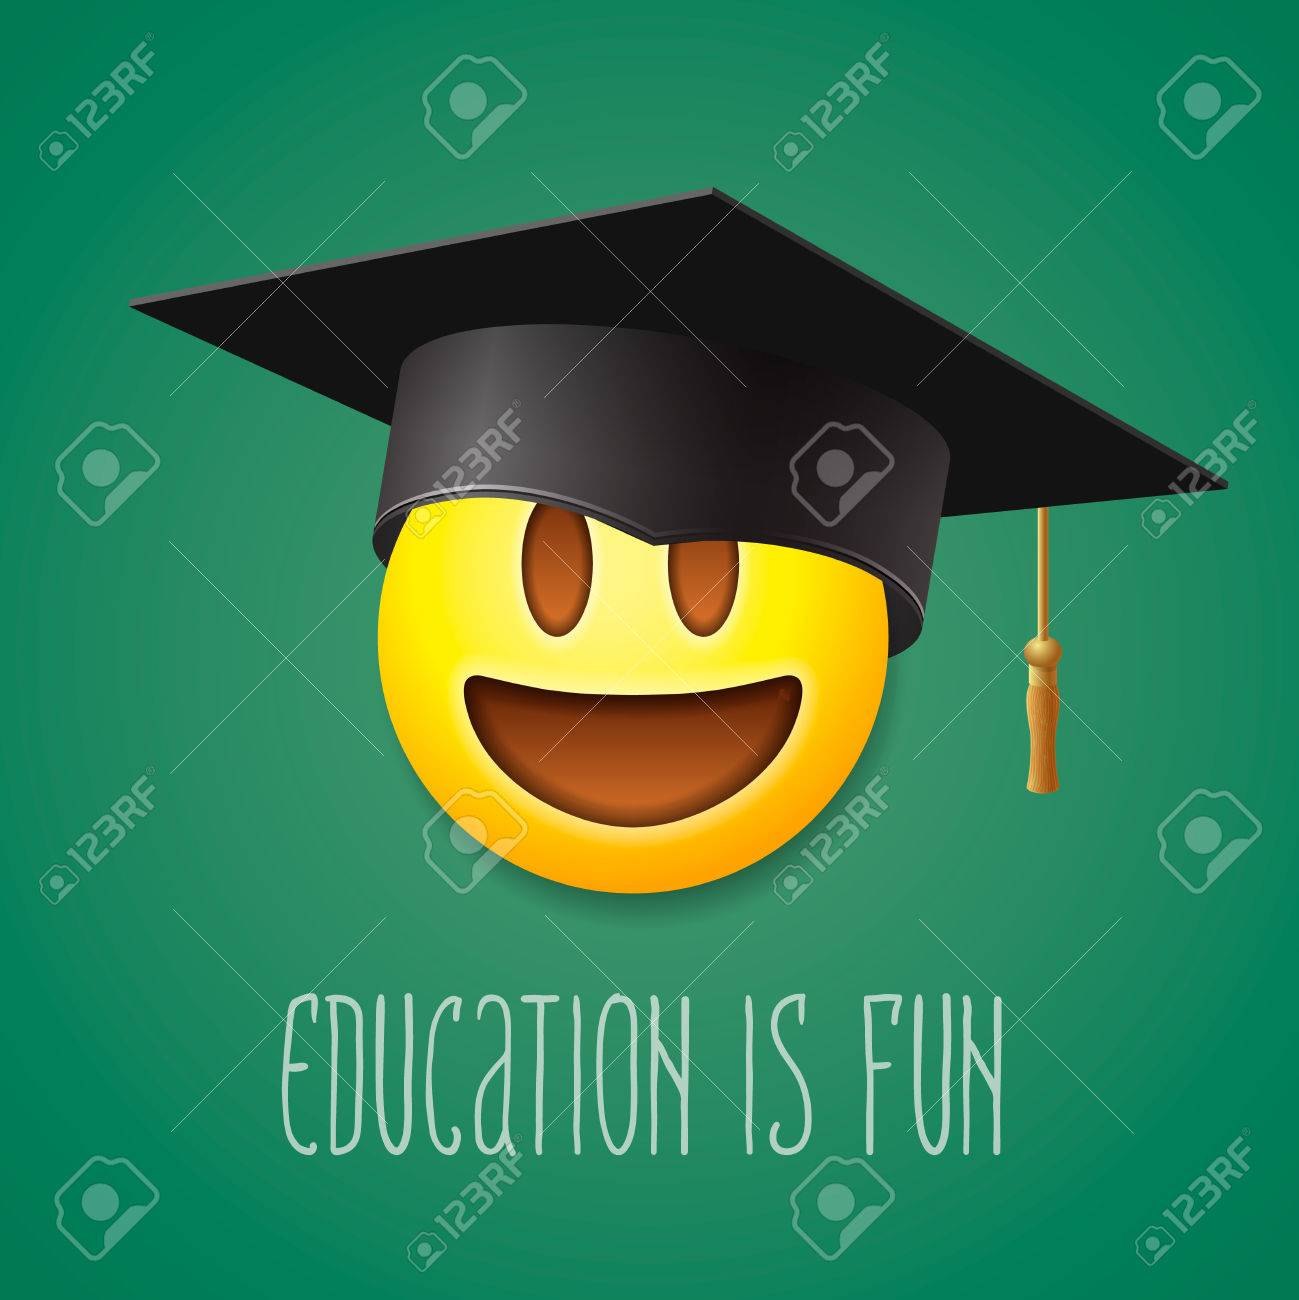 Education is fun emoticon laughing in the mortarboard emoji education is fun emoticon laughing in the mortarboard emoji smile symbol vector illustration biocorpaavc Images